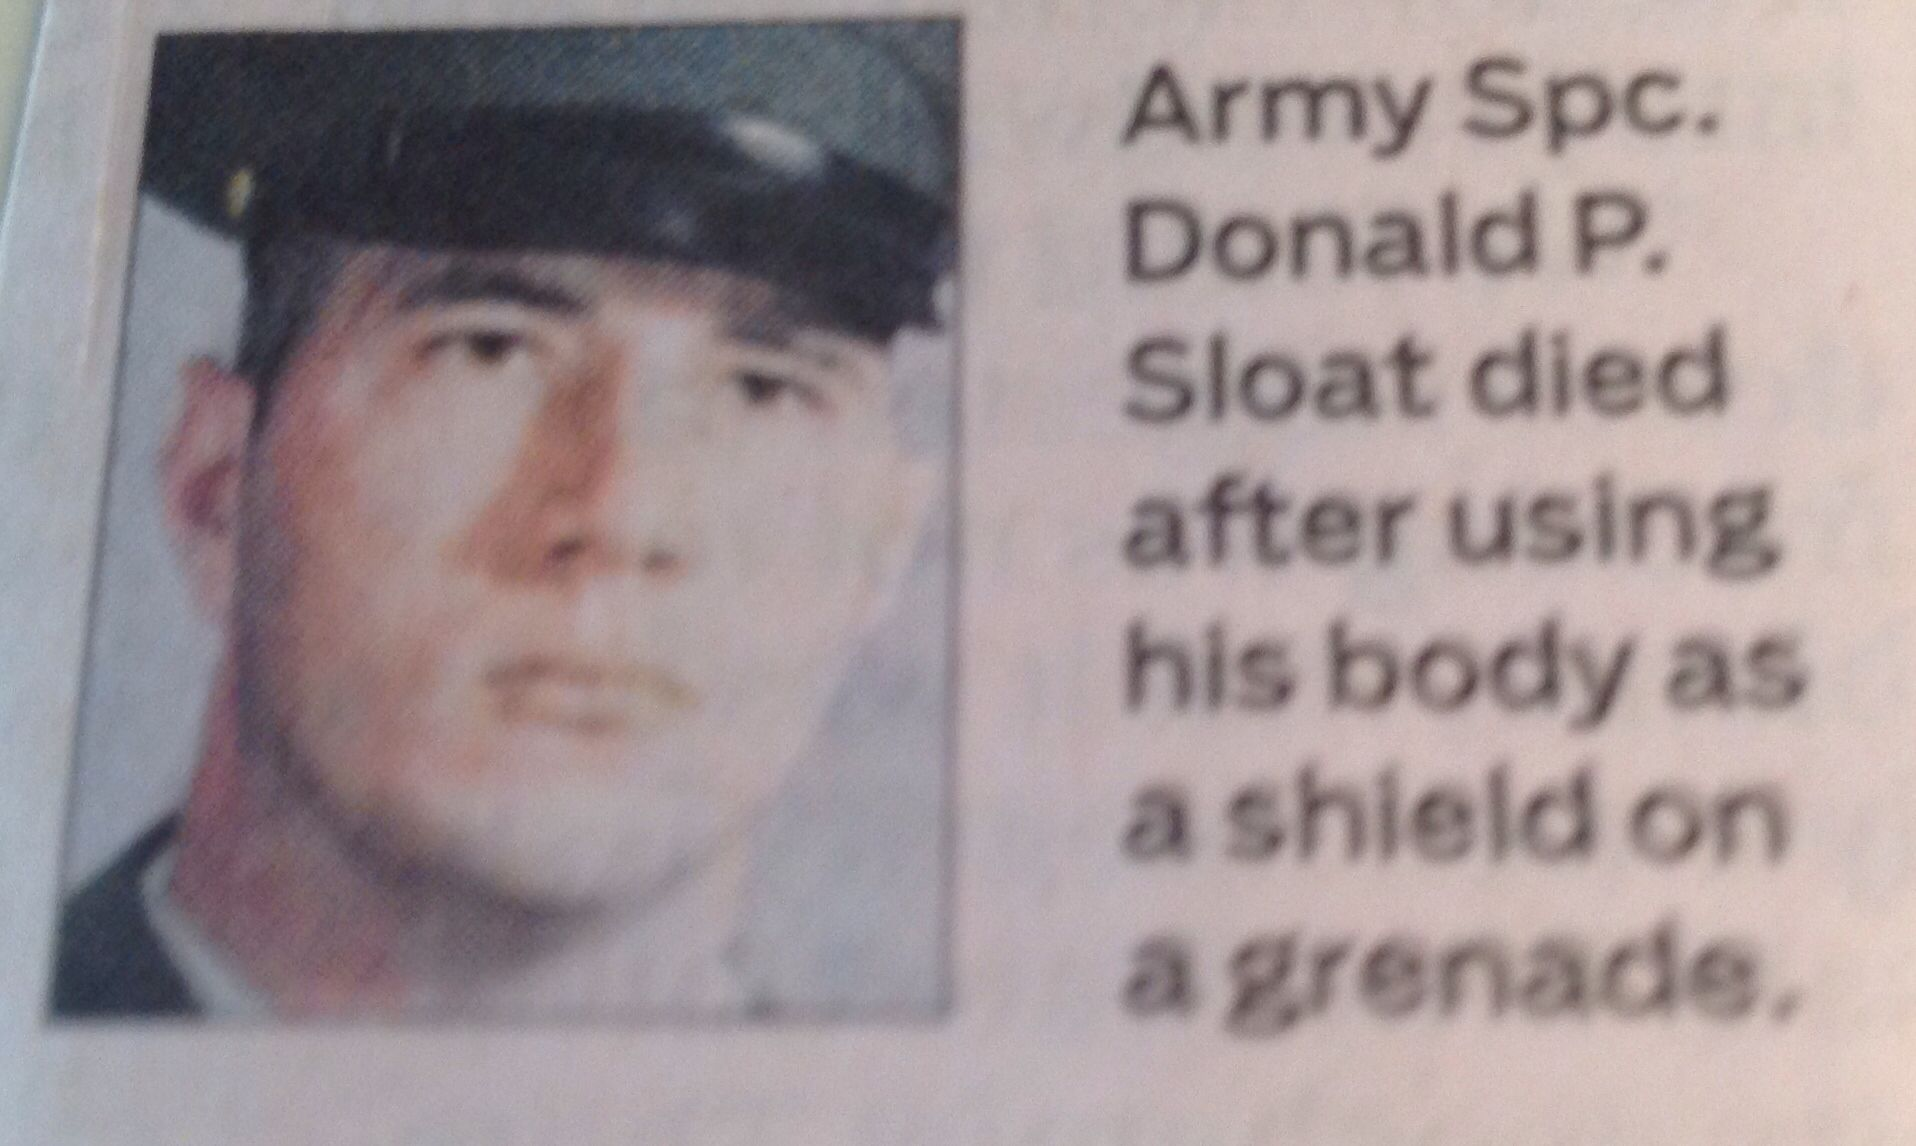 Medal Of Honor Spc. Donald P. Sloat.